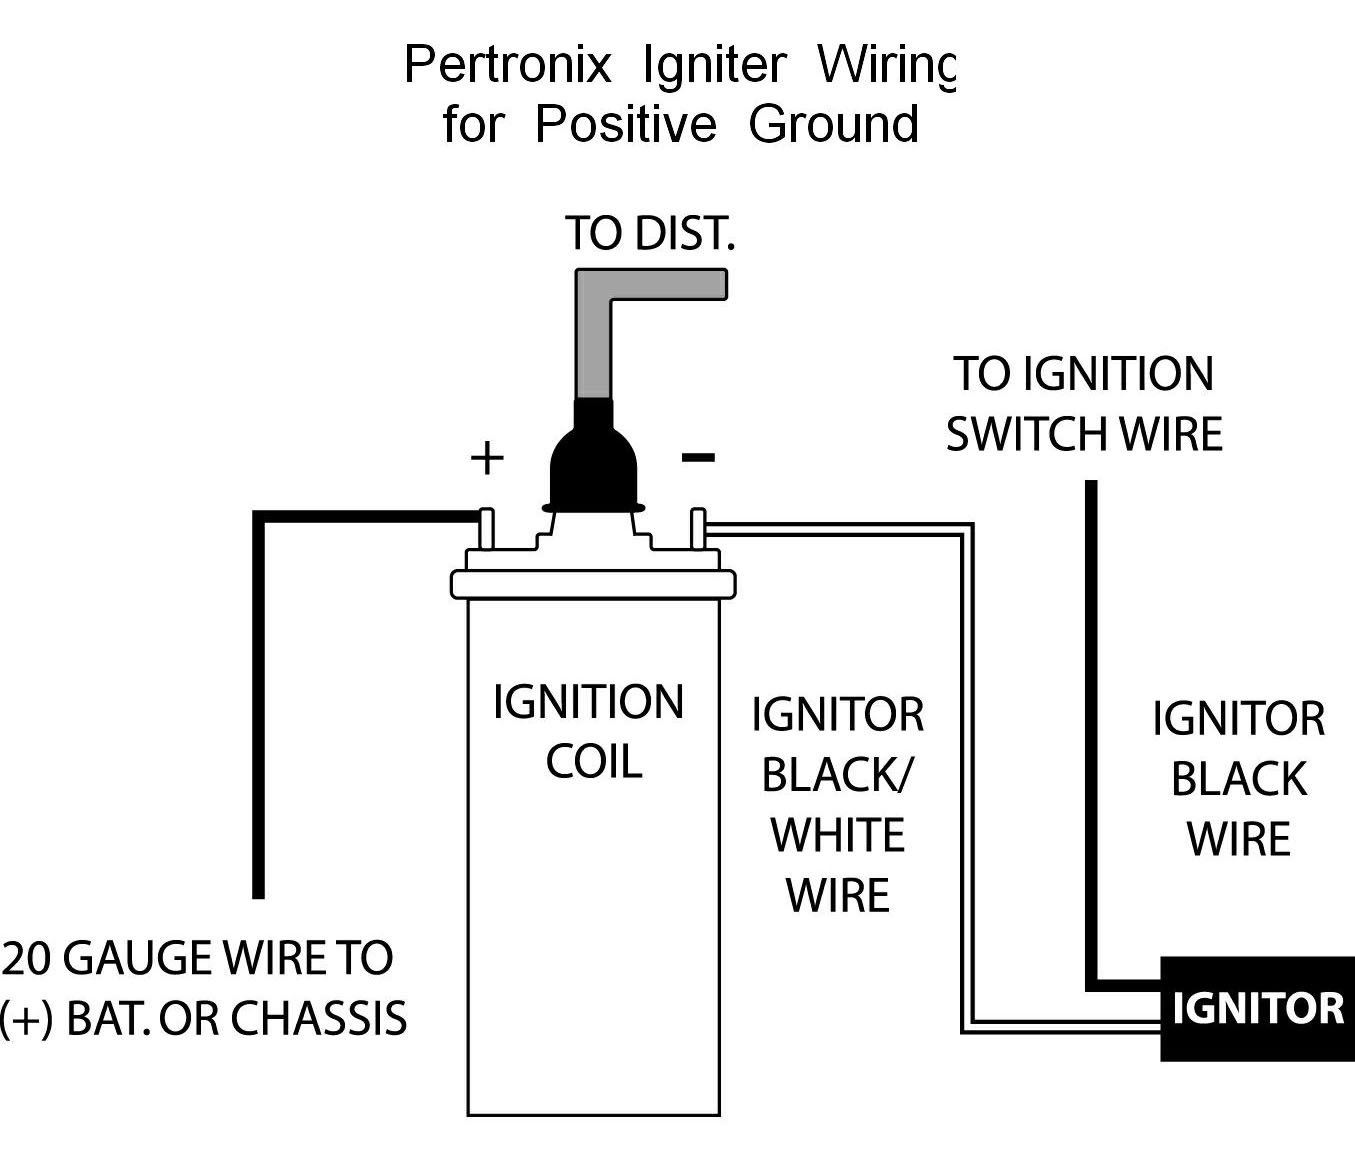 PerPosGndWiring pertronix positive ground wiring ballast resistor wiring diagram at gsmx.co